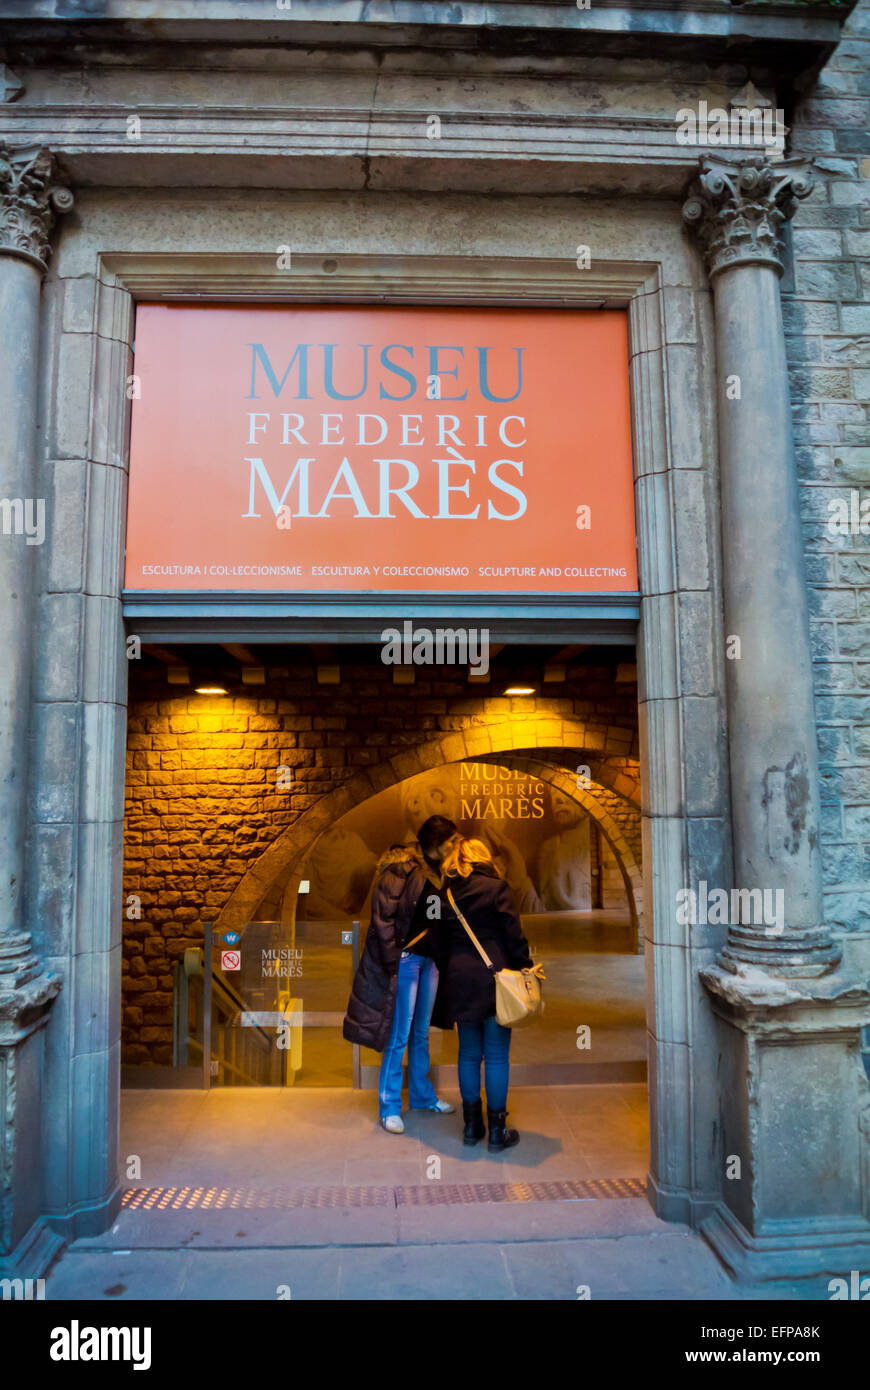 Museo Frederic Mares, Barri Gotic, Barcelona, Spain - Stock Image